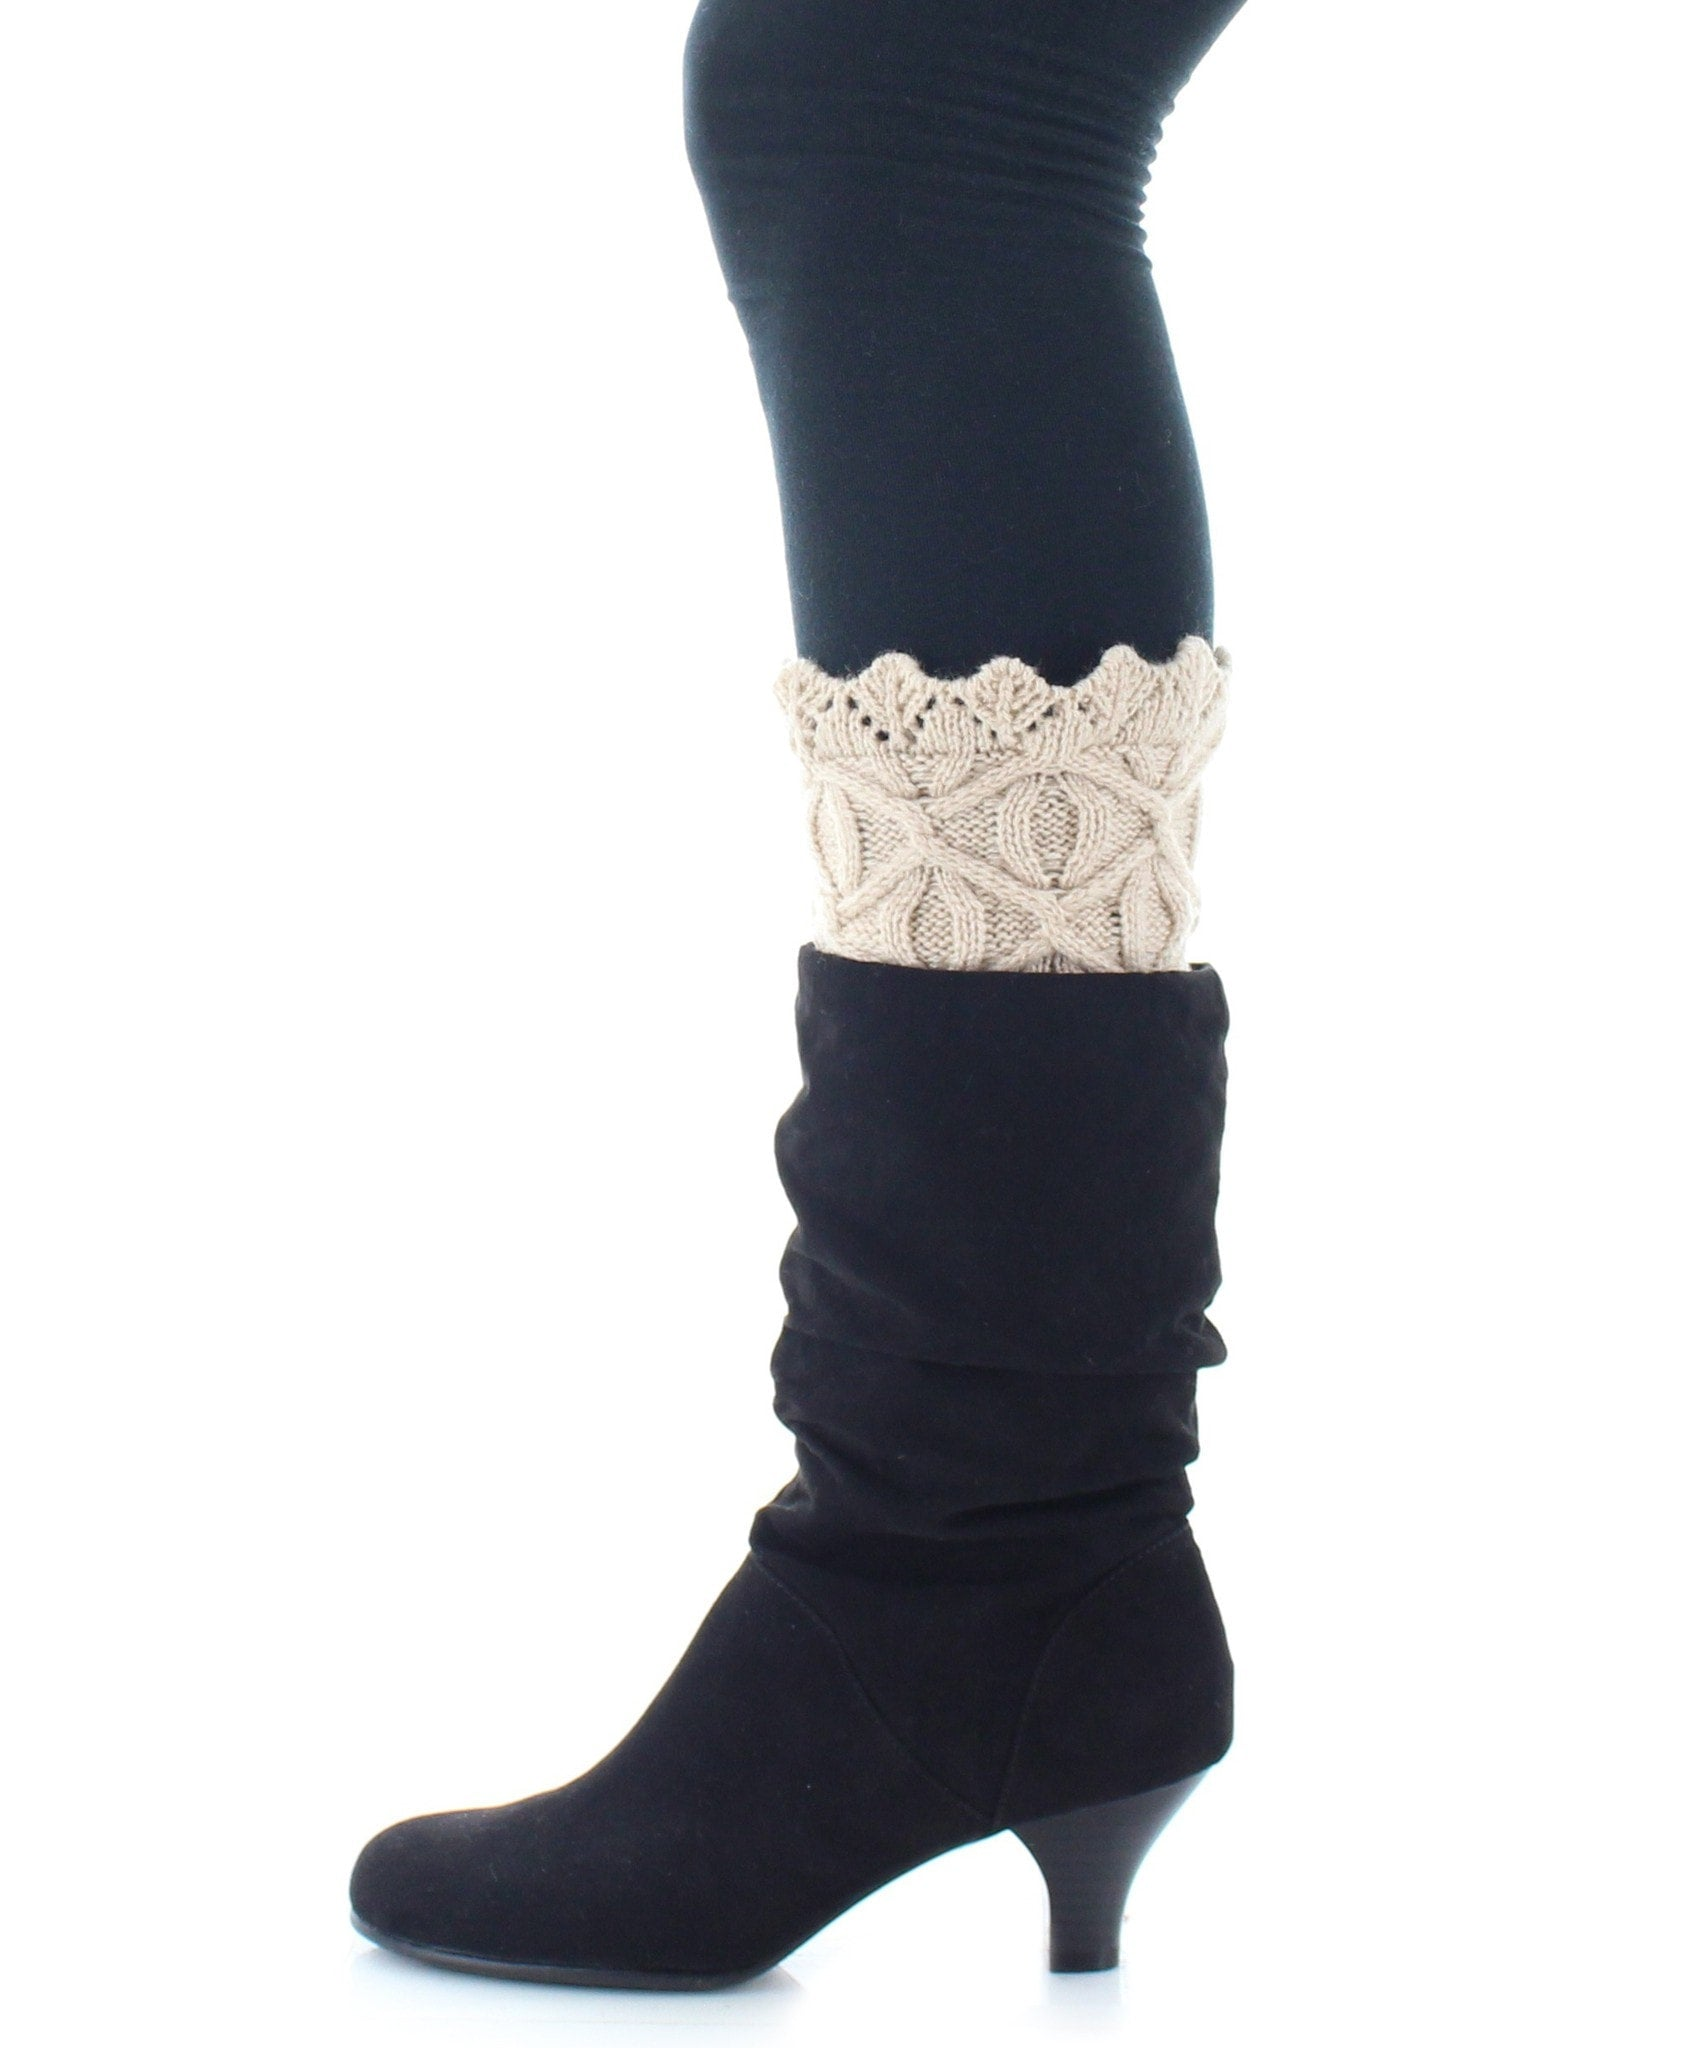 Boot Toppers | Knit Socks | Diamond & Circular Pattern - MeMoi - 4